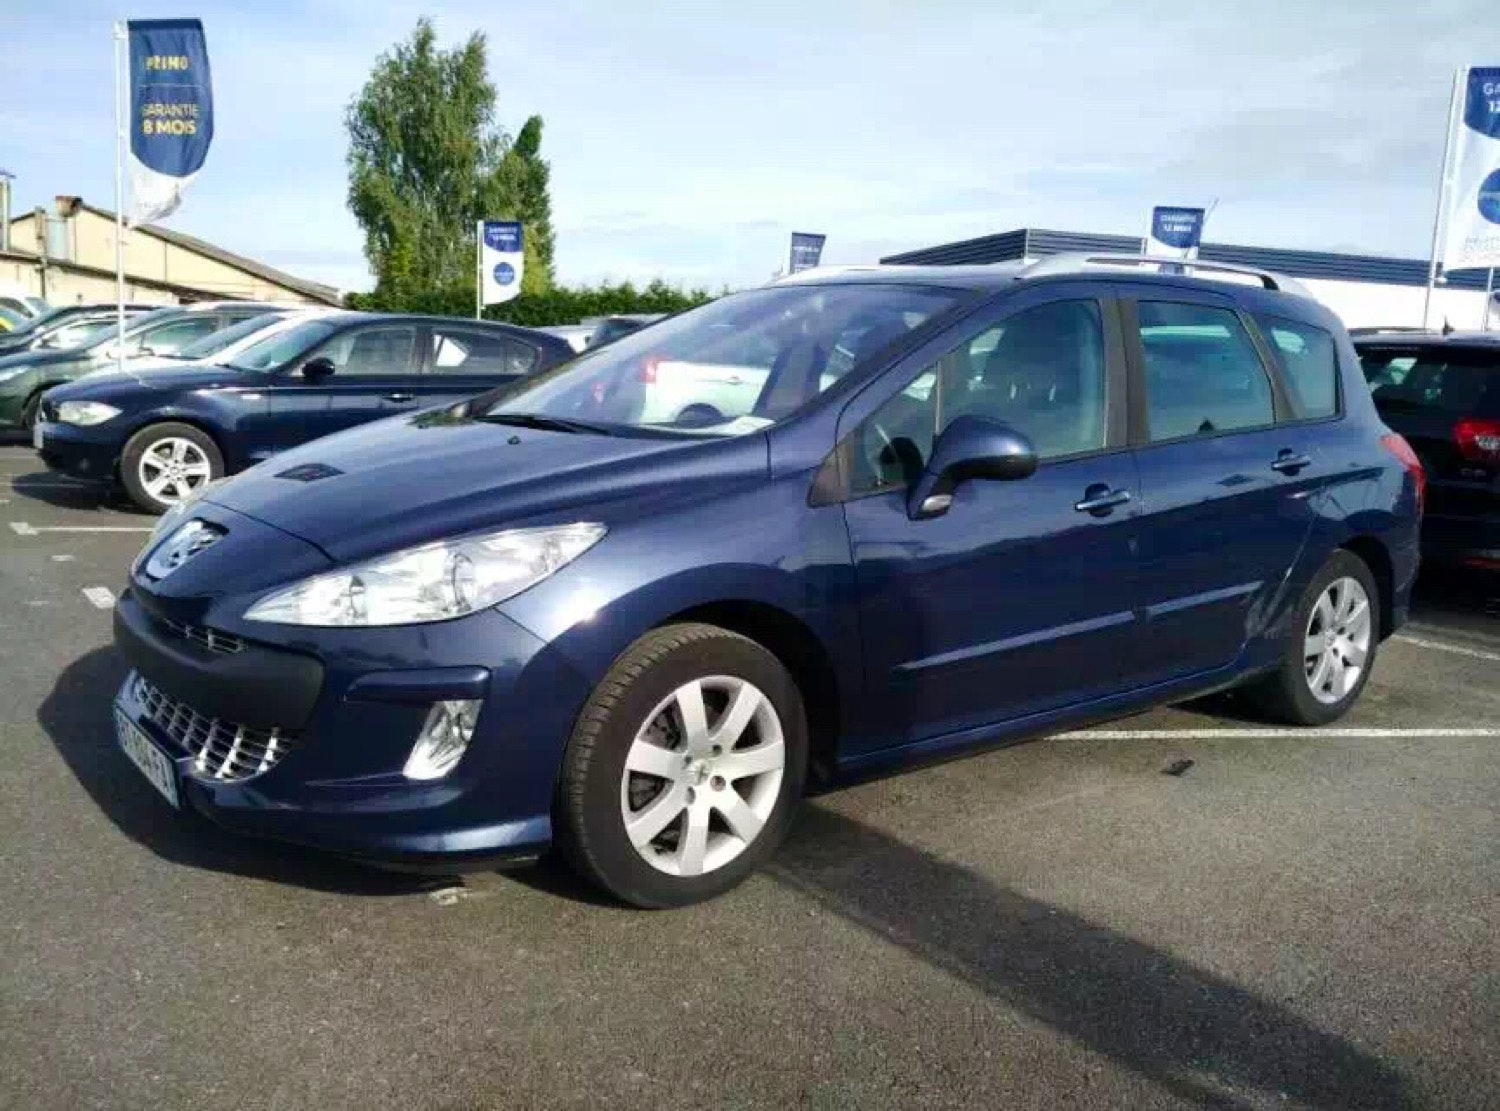 Peugeot 308sw 1.6HDI 110ch, 2008, Diesel, 7 places